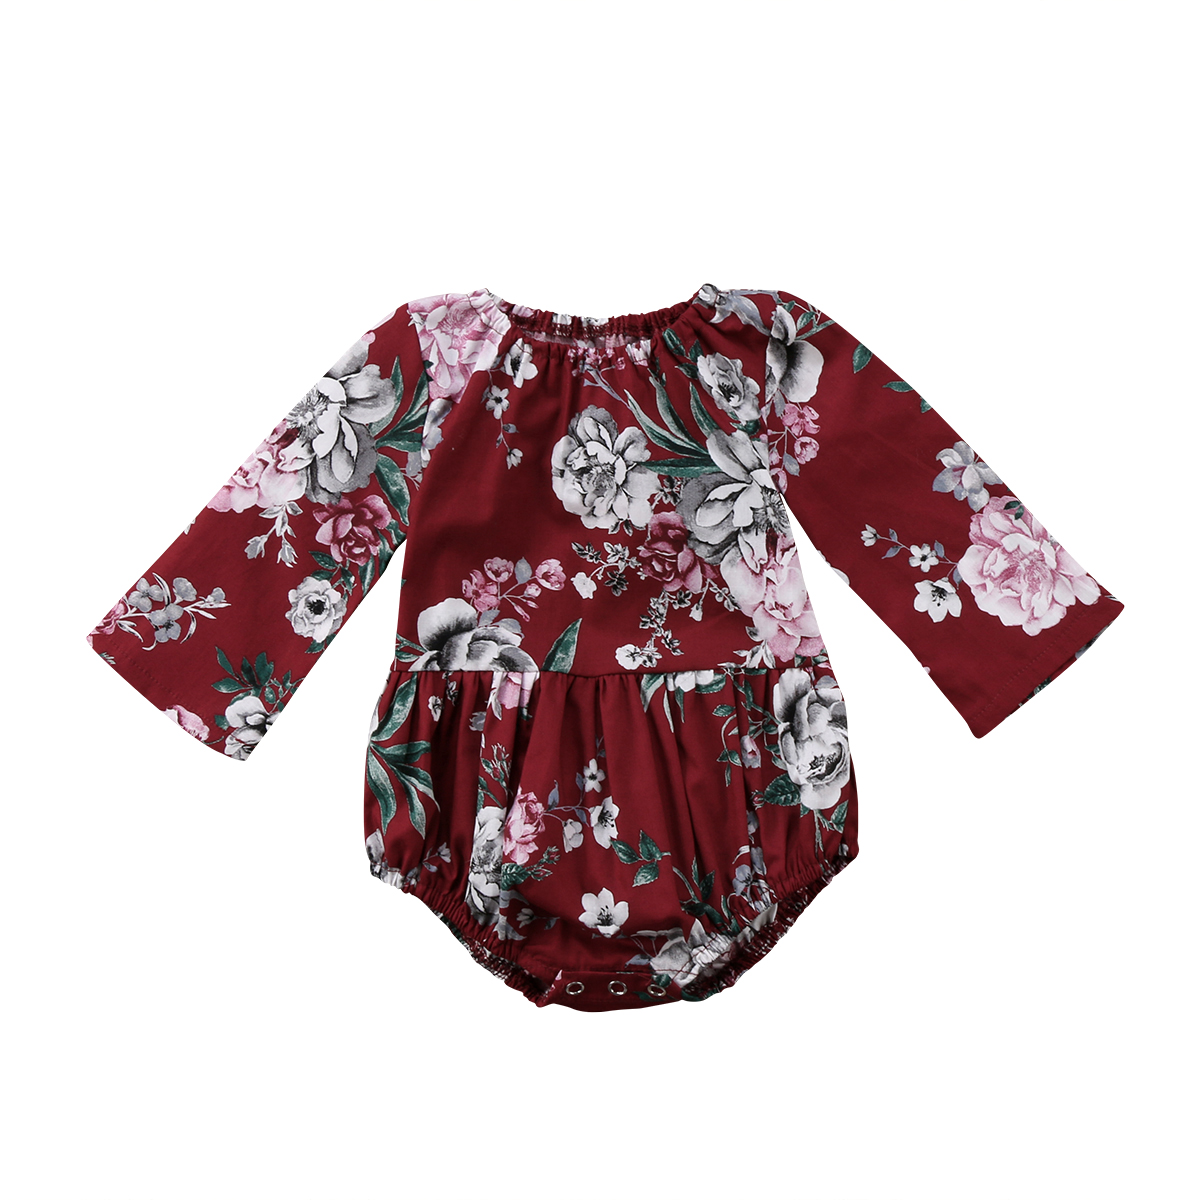 2018 Adorable Baby Kids Girls   Rompers   Cotton Floral Printed Long Sleeve Jumpsuit   Romper   Clothes